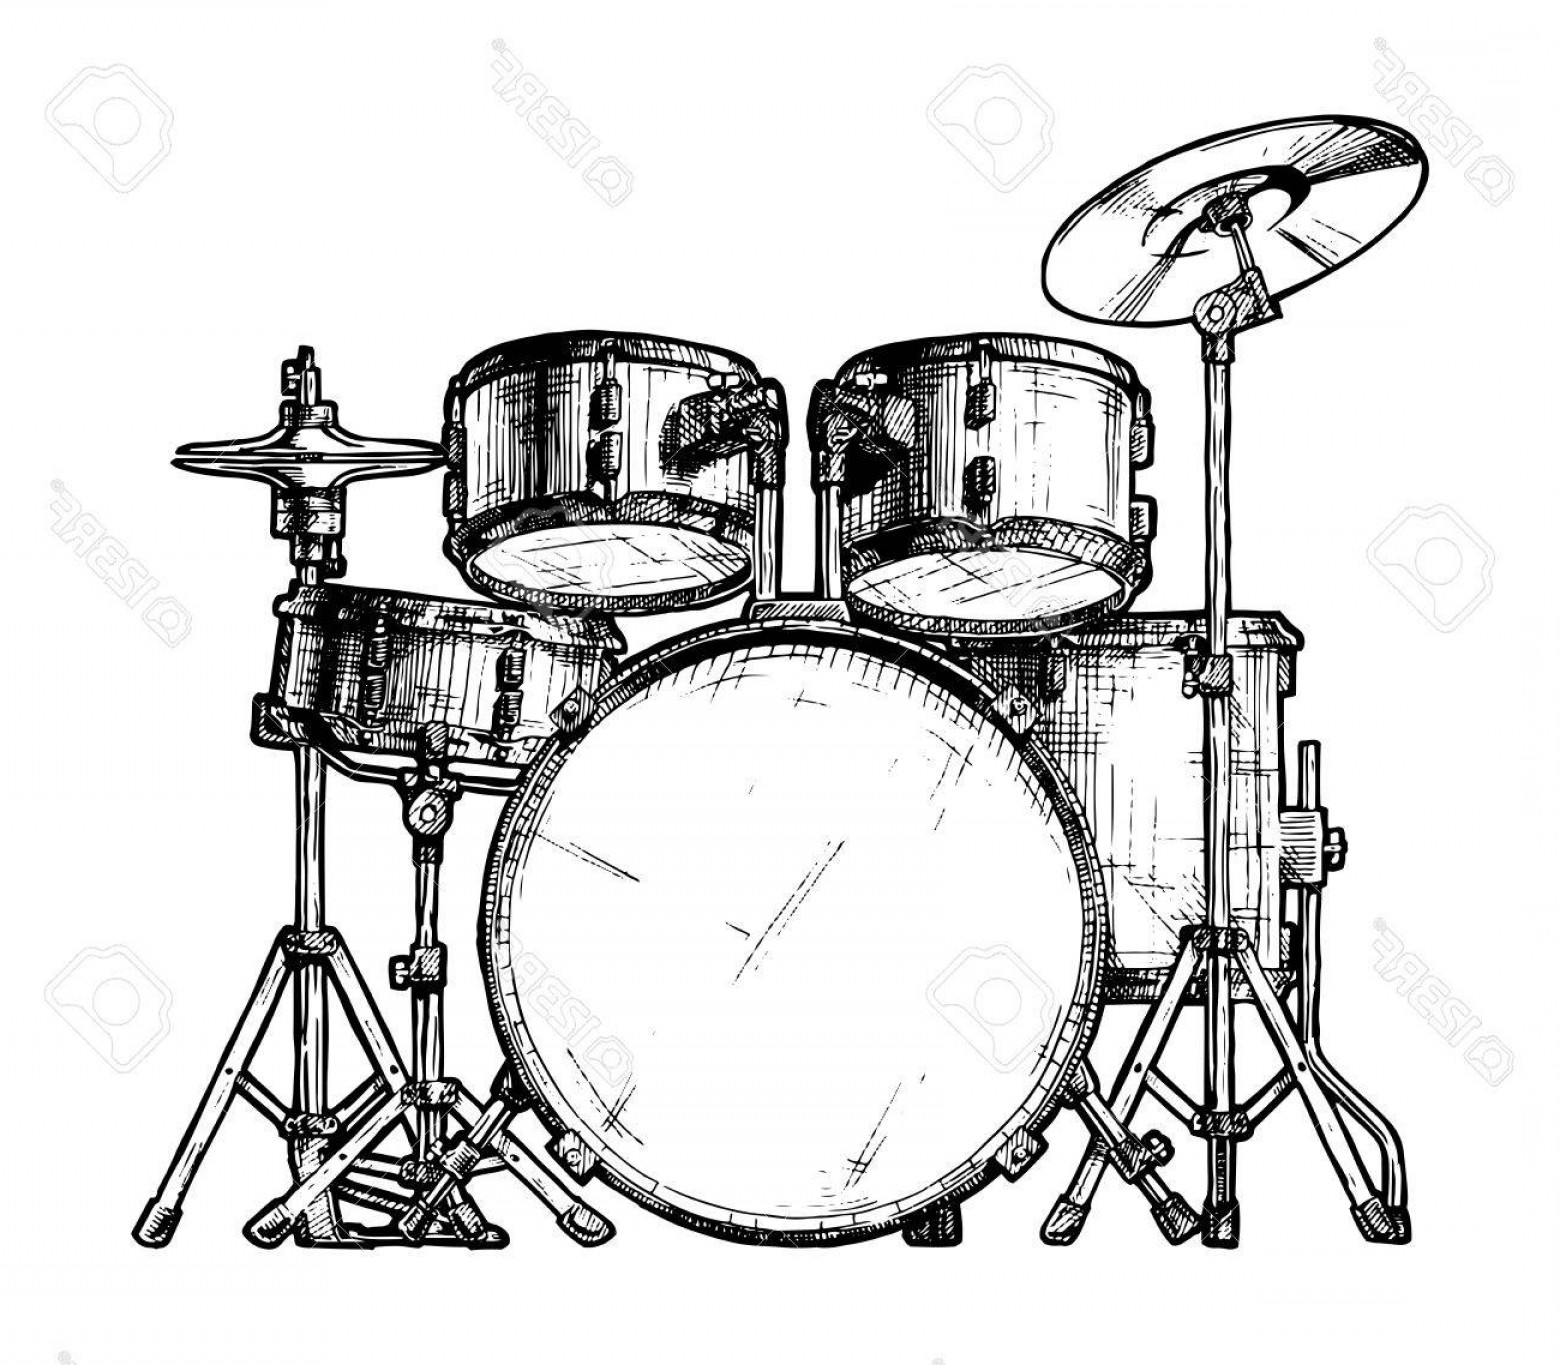 Drum Vector Art: Photostock Vector Hand Drawn Illustration Of Drum Kit Isolated On White